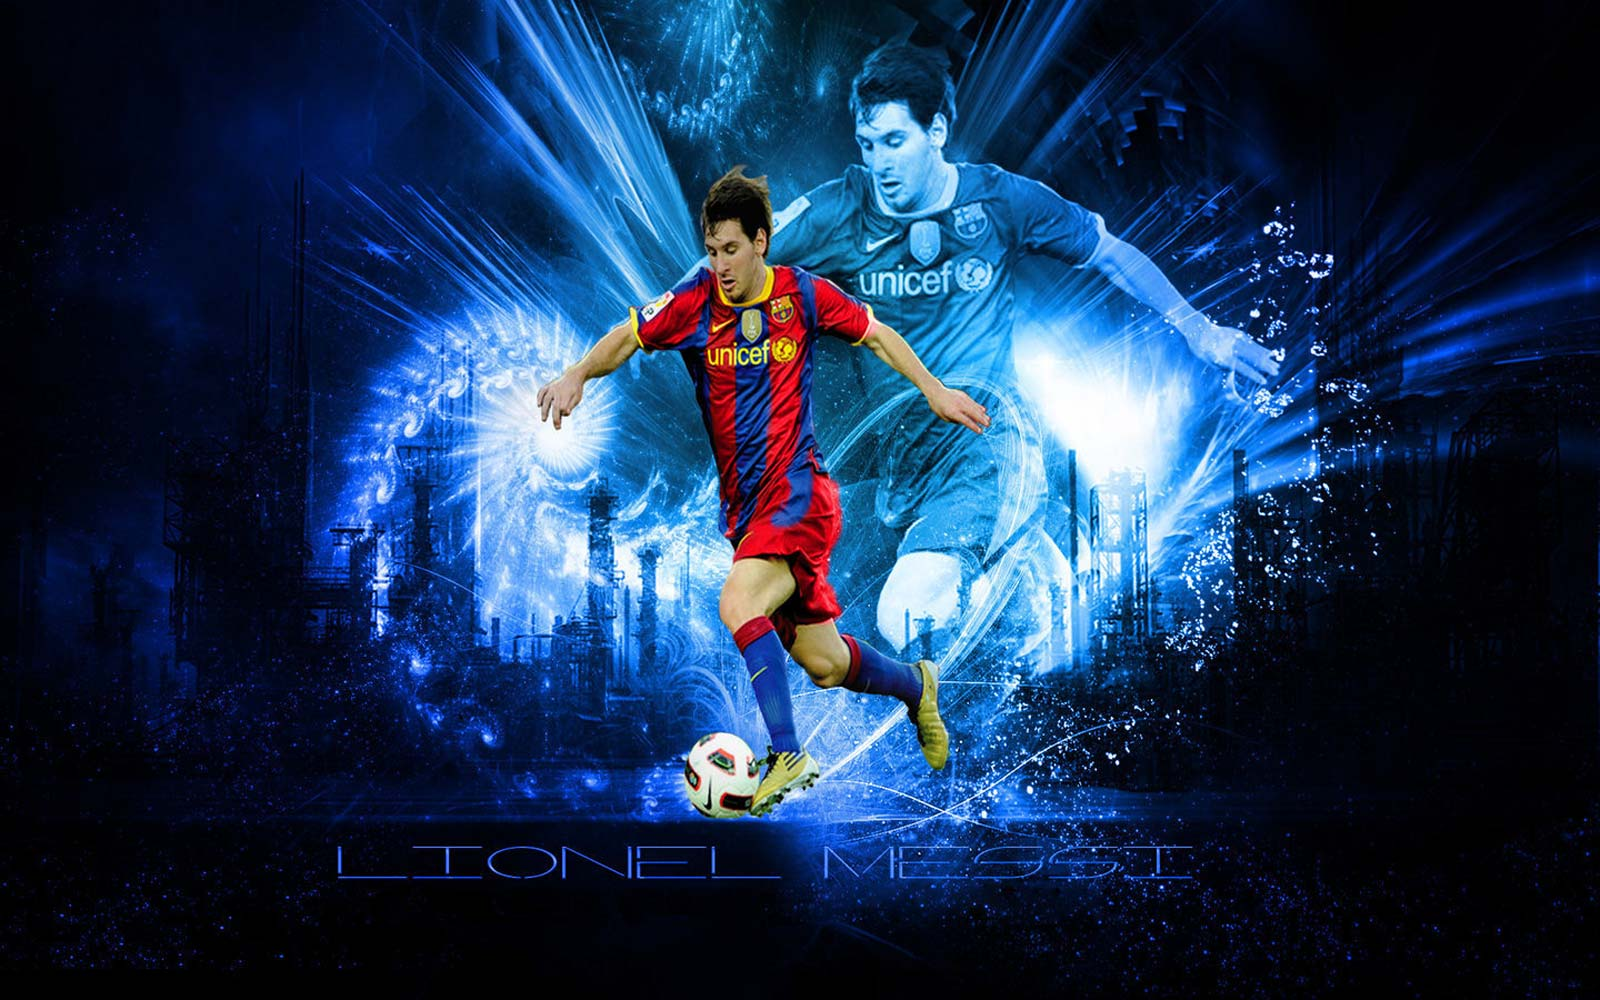 Leo Messi 2013 Wallpaper Hd Images amp Pictures   Becuo 1600x1000